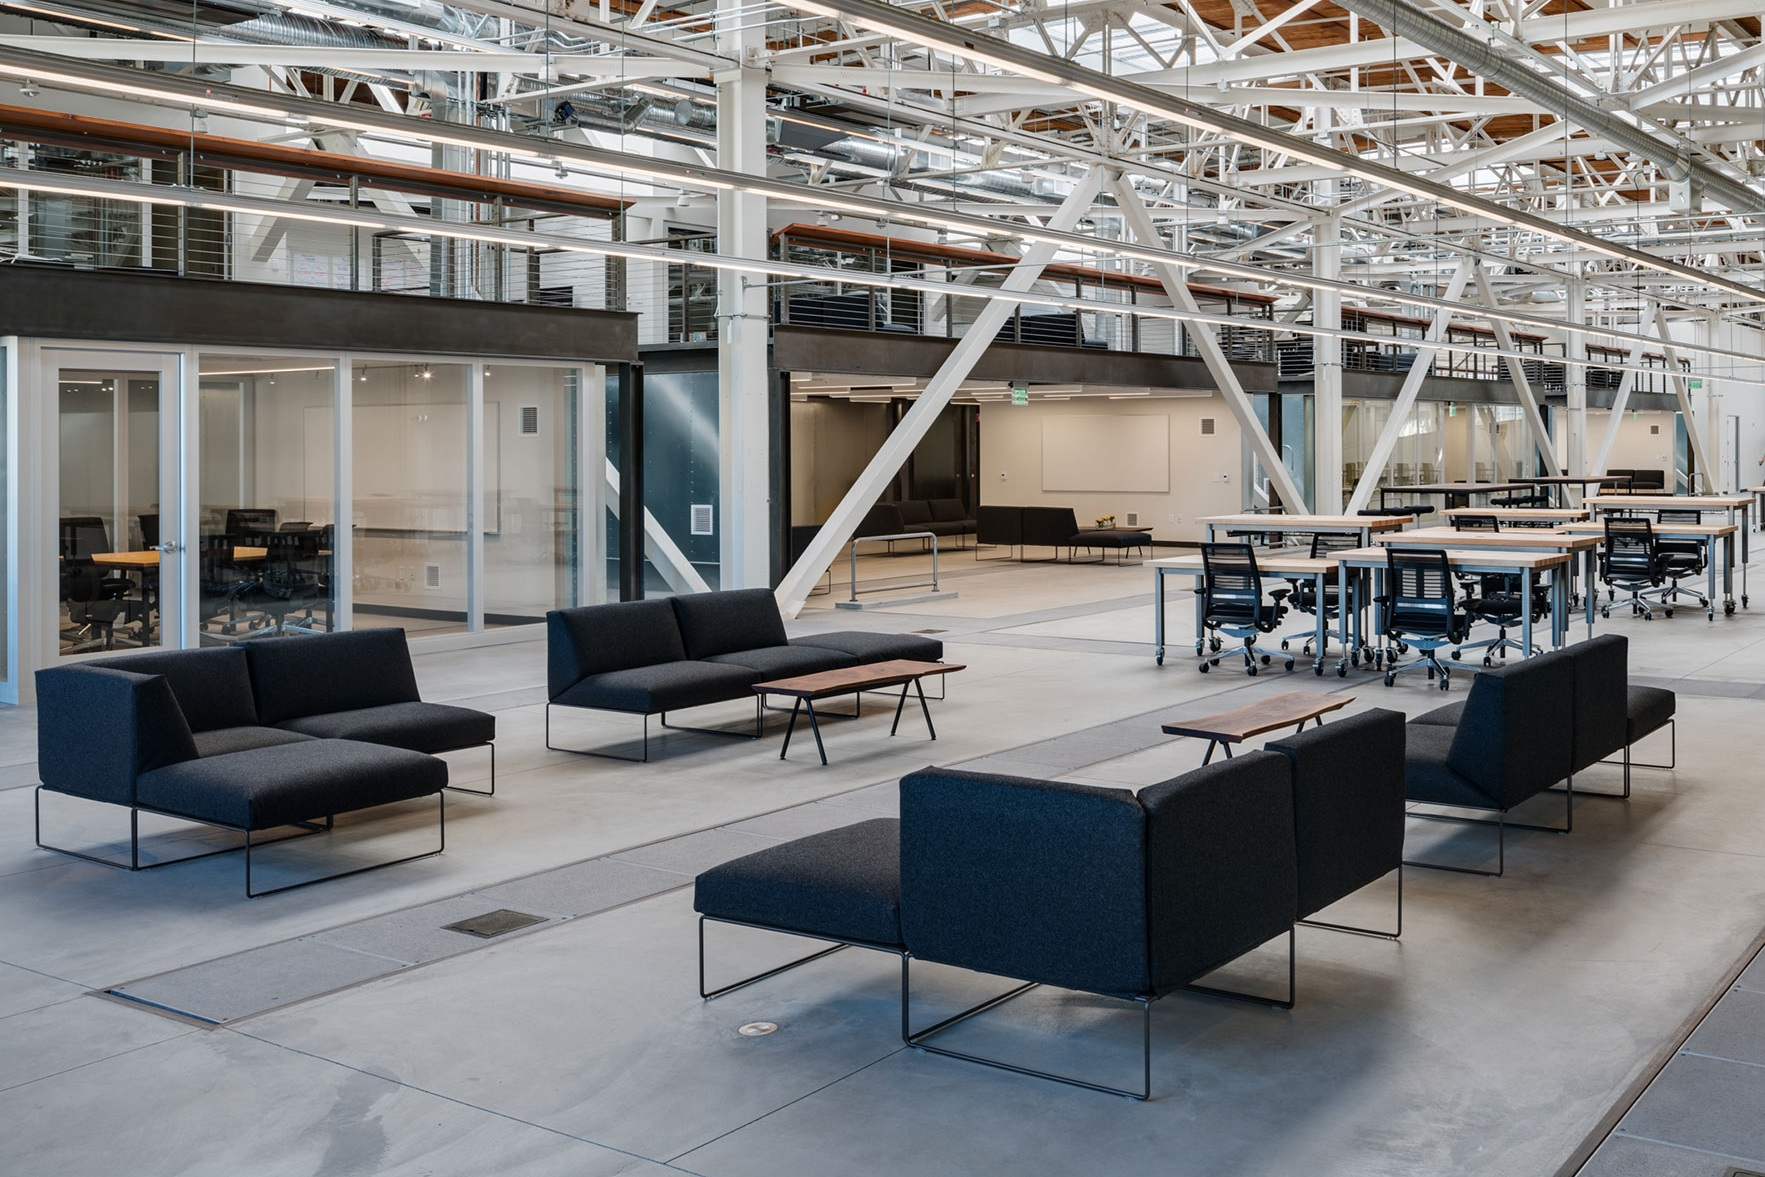 San Francisco Workplace, Office, Adaptive Reuse, Tech Company, Flexible Workspace, Furniture